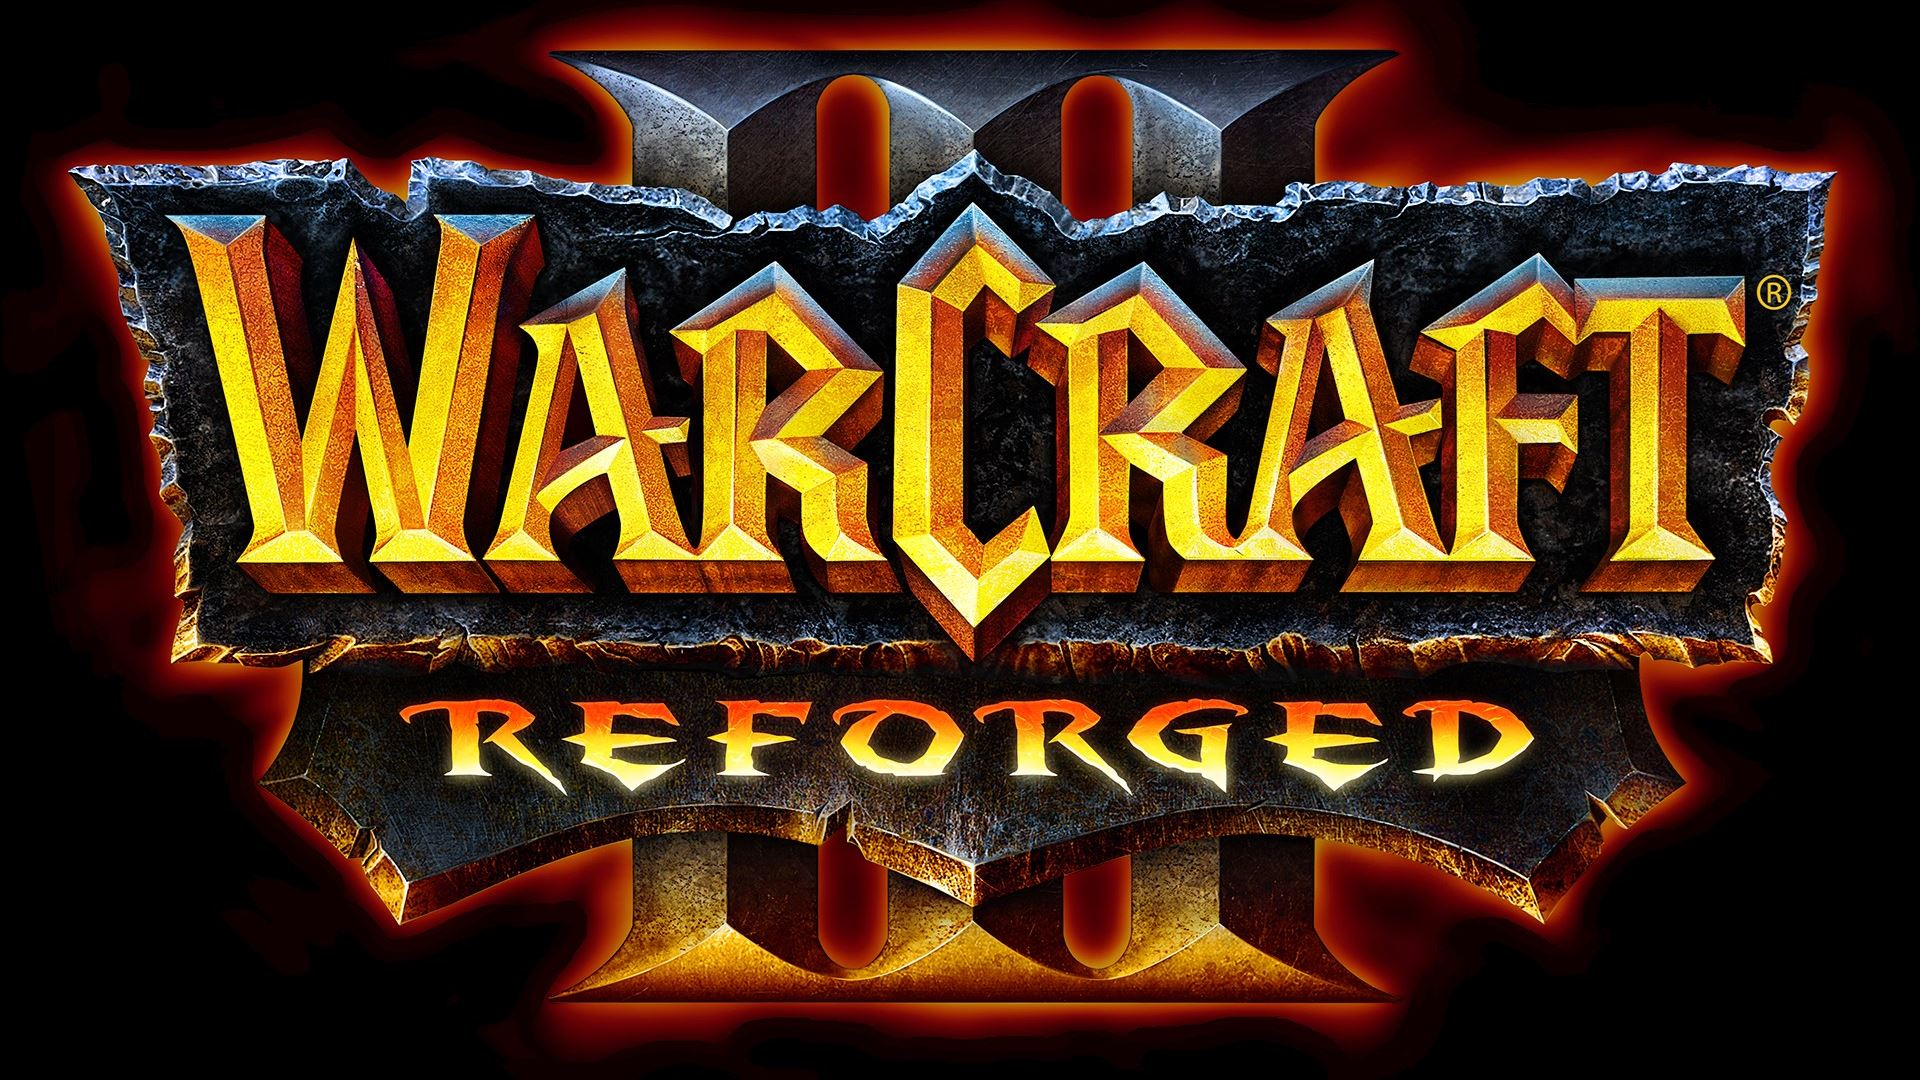 Announced game Warcraft 3: Reforged for macOS and Windows